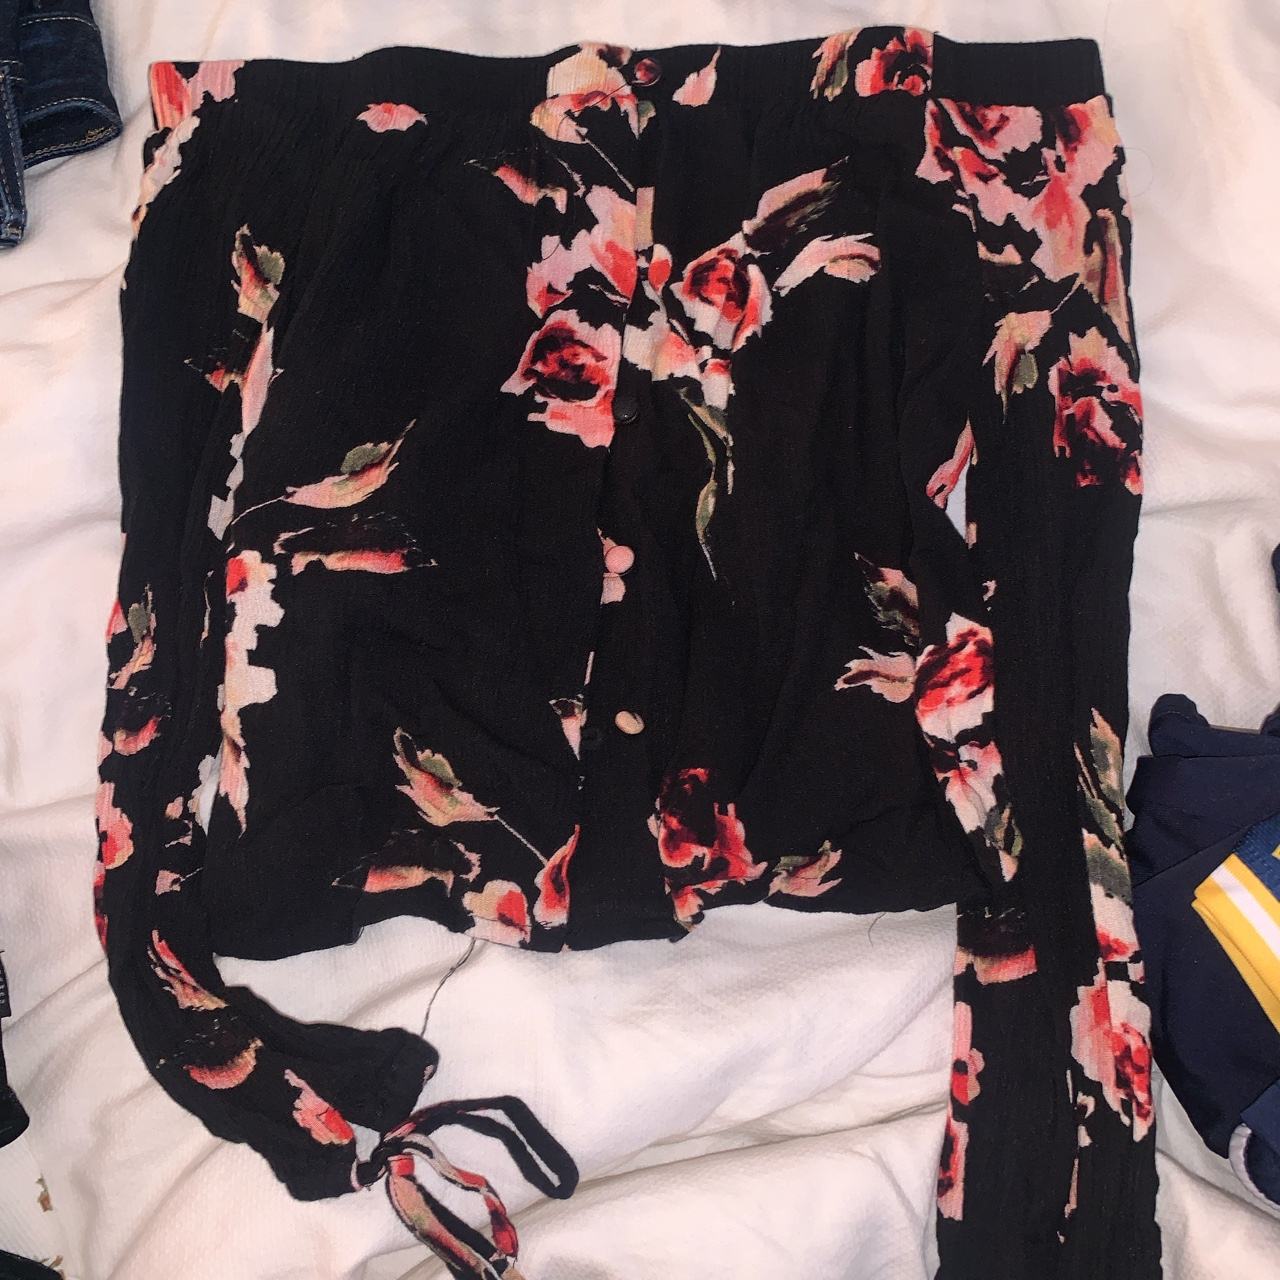 Product Image 1 - Pacsun Off The Shoulder Top!!  -The